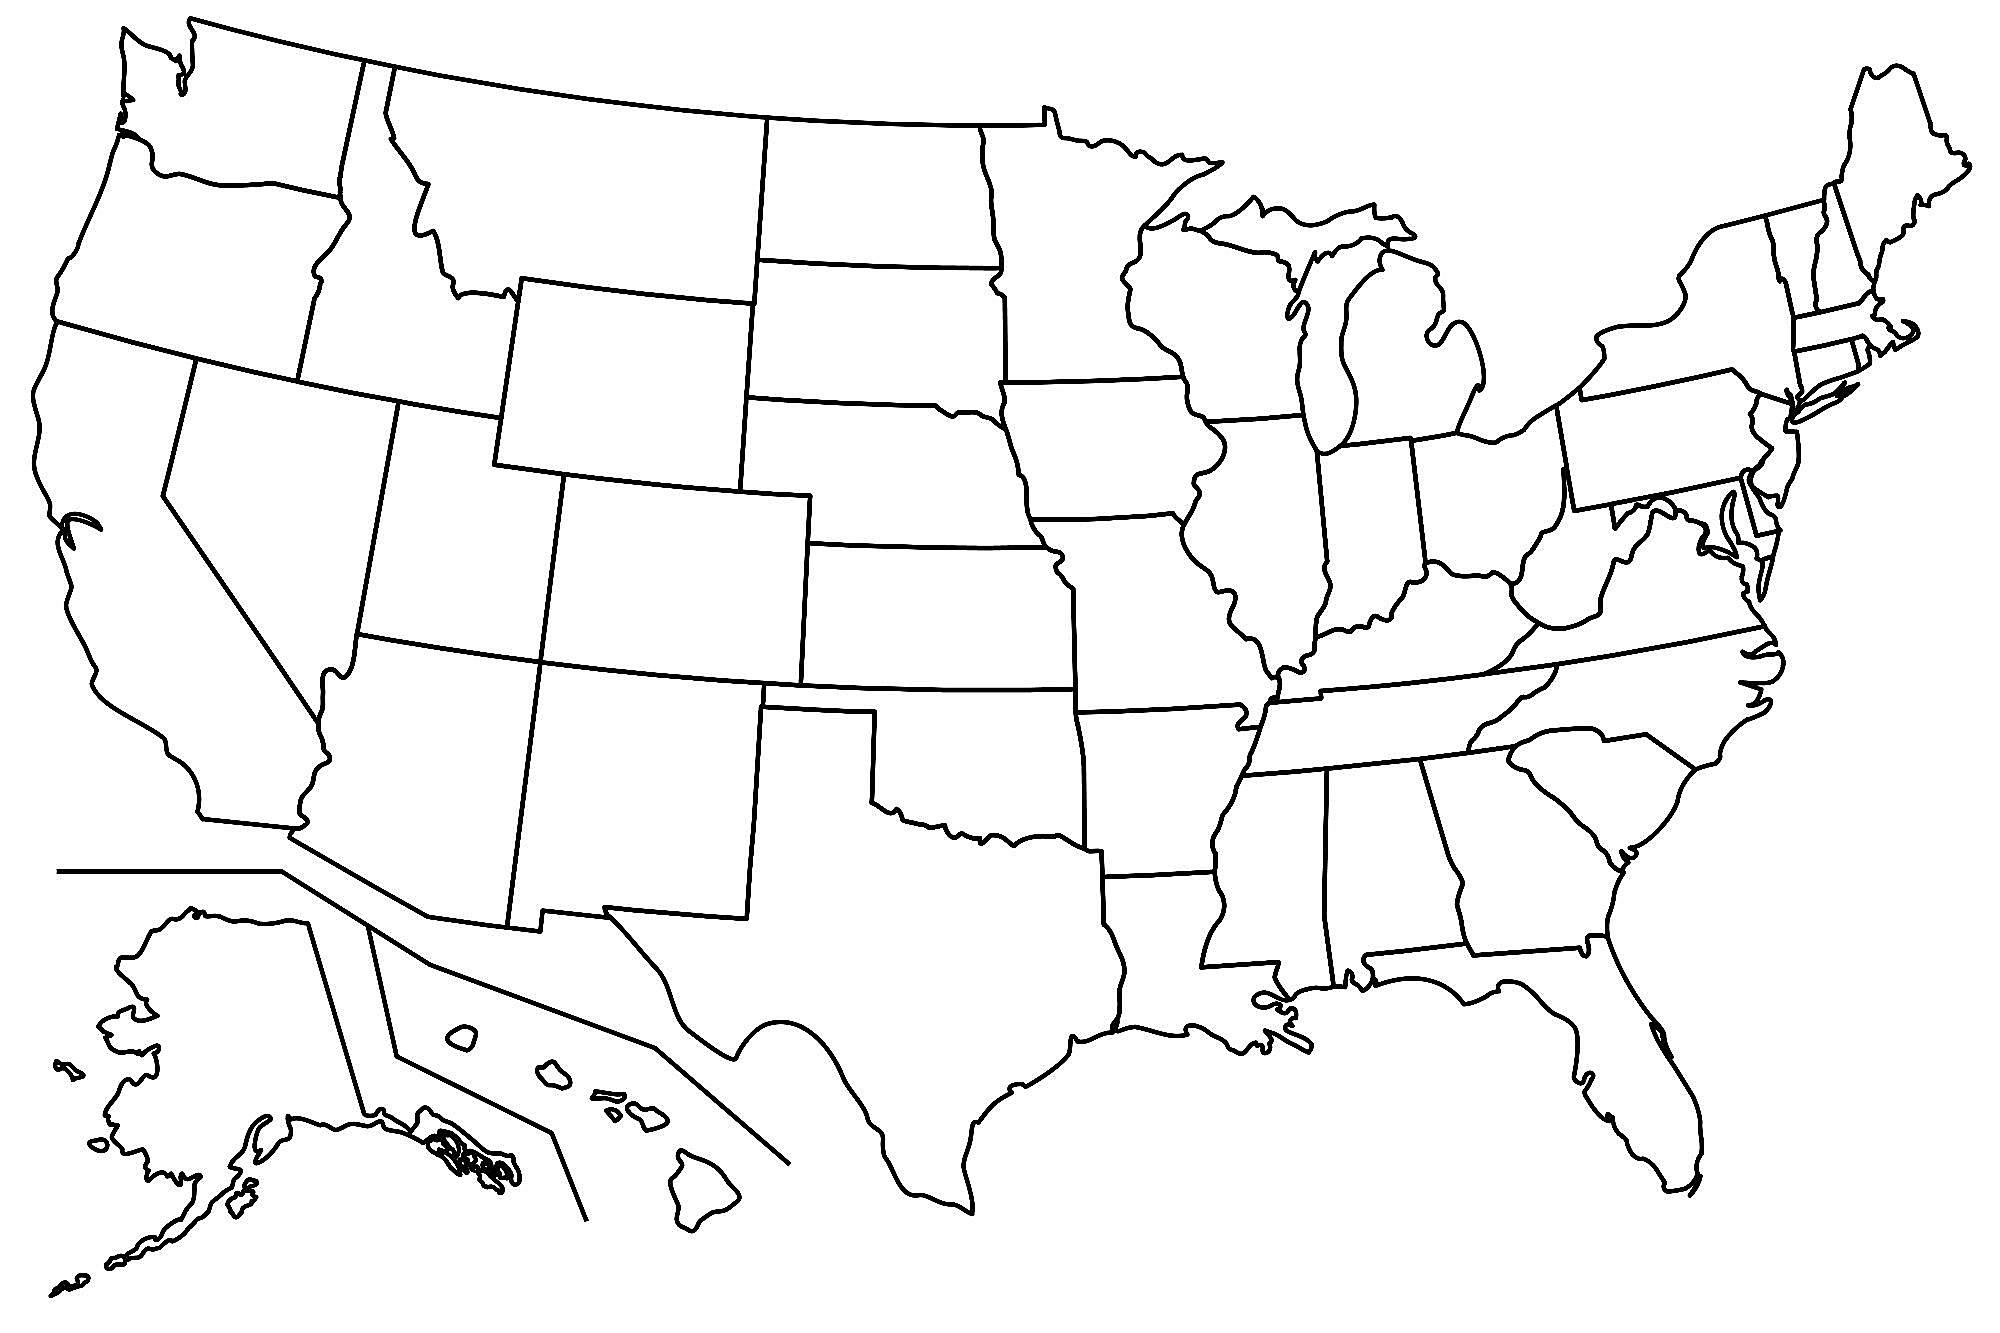 17 Blank Maps of the United States and Other Countries